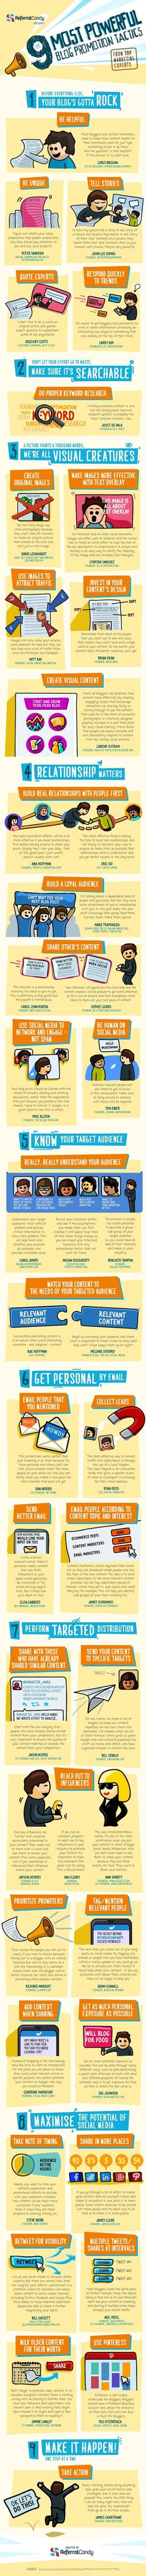 36 Tried-and-True Ways to Promote Your Blog Posts #Infographic   MarketingHits   Scoop.it